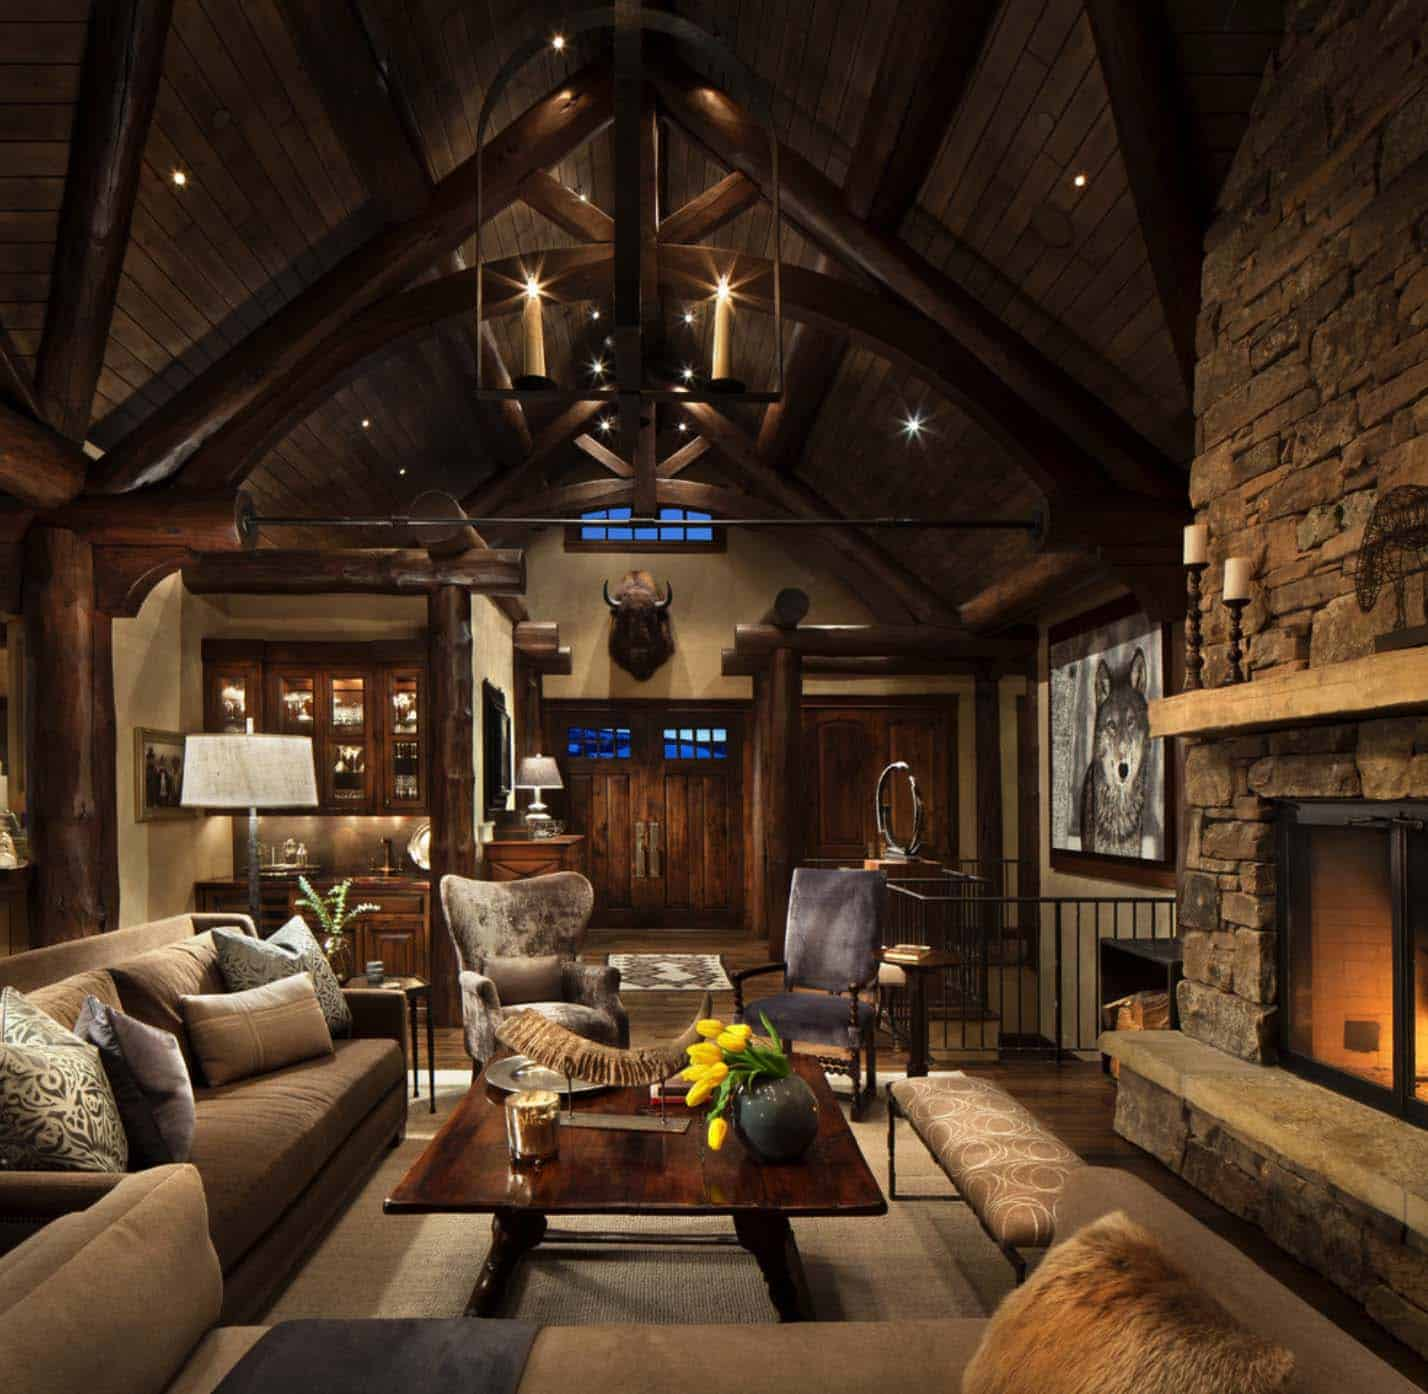 Interior Design Ideas For Home: Exquisite Mountain Home Remodel Mixes Rustic With Modern